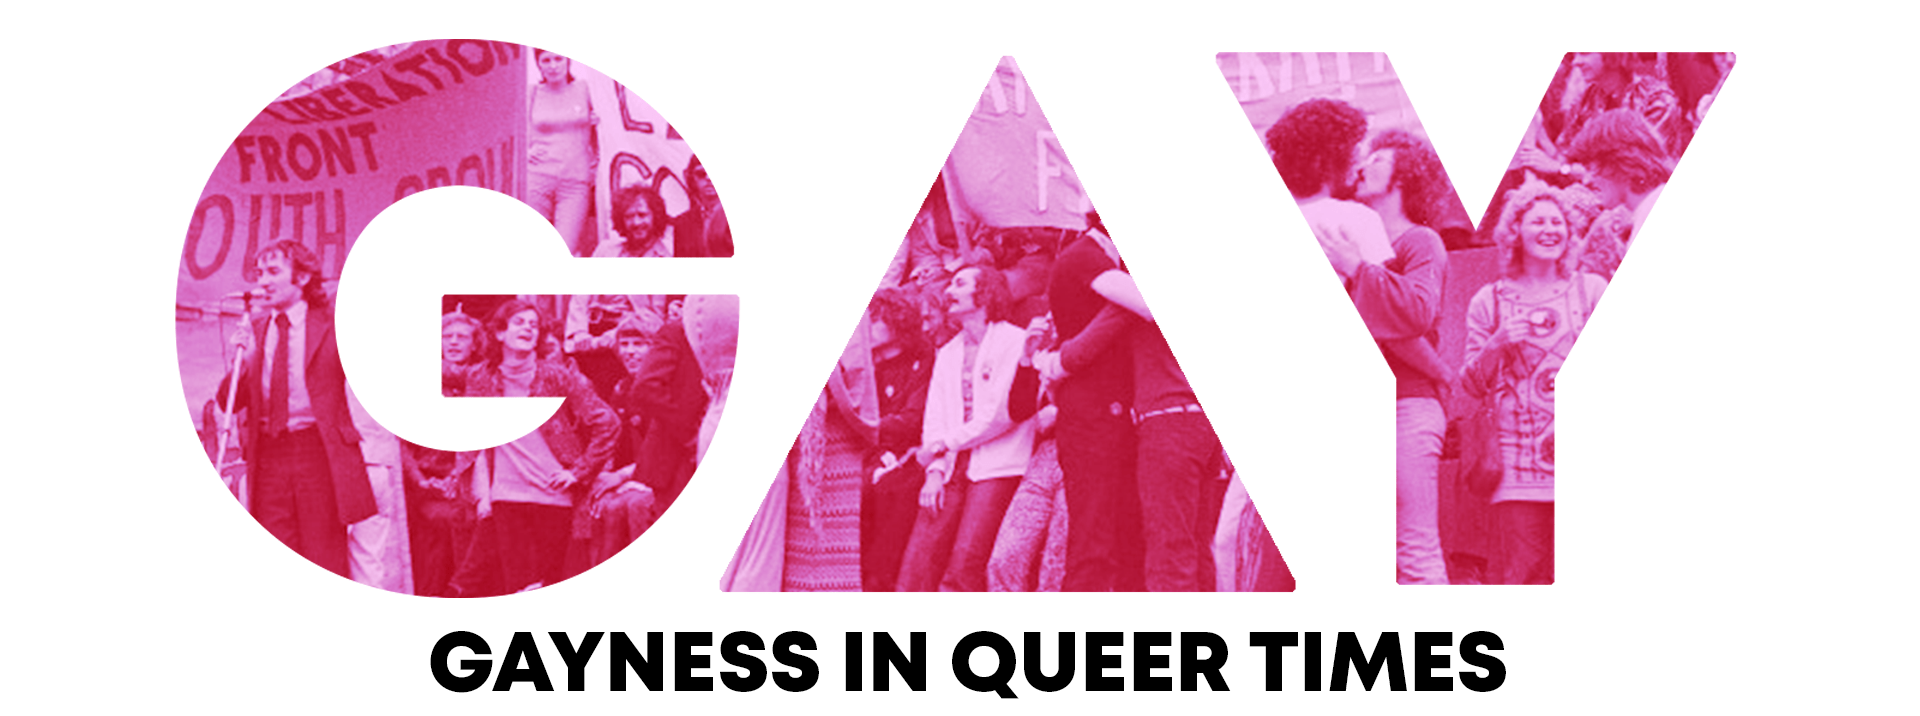 Gayness In Queer Times